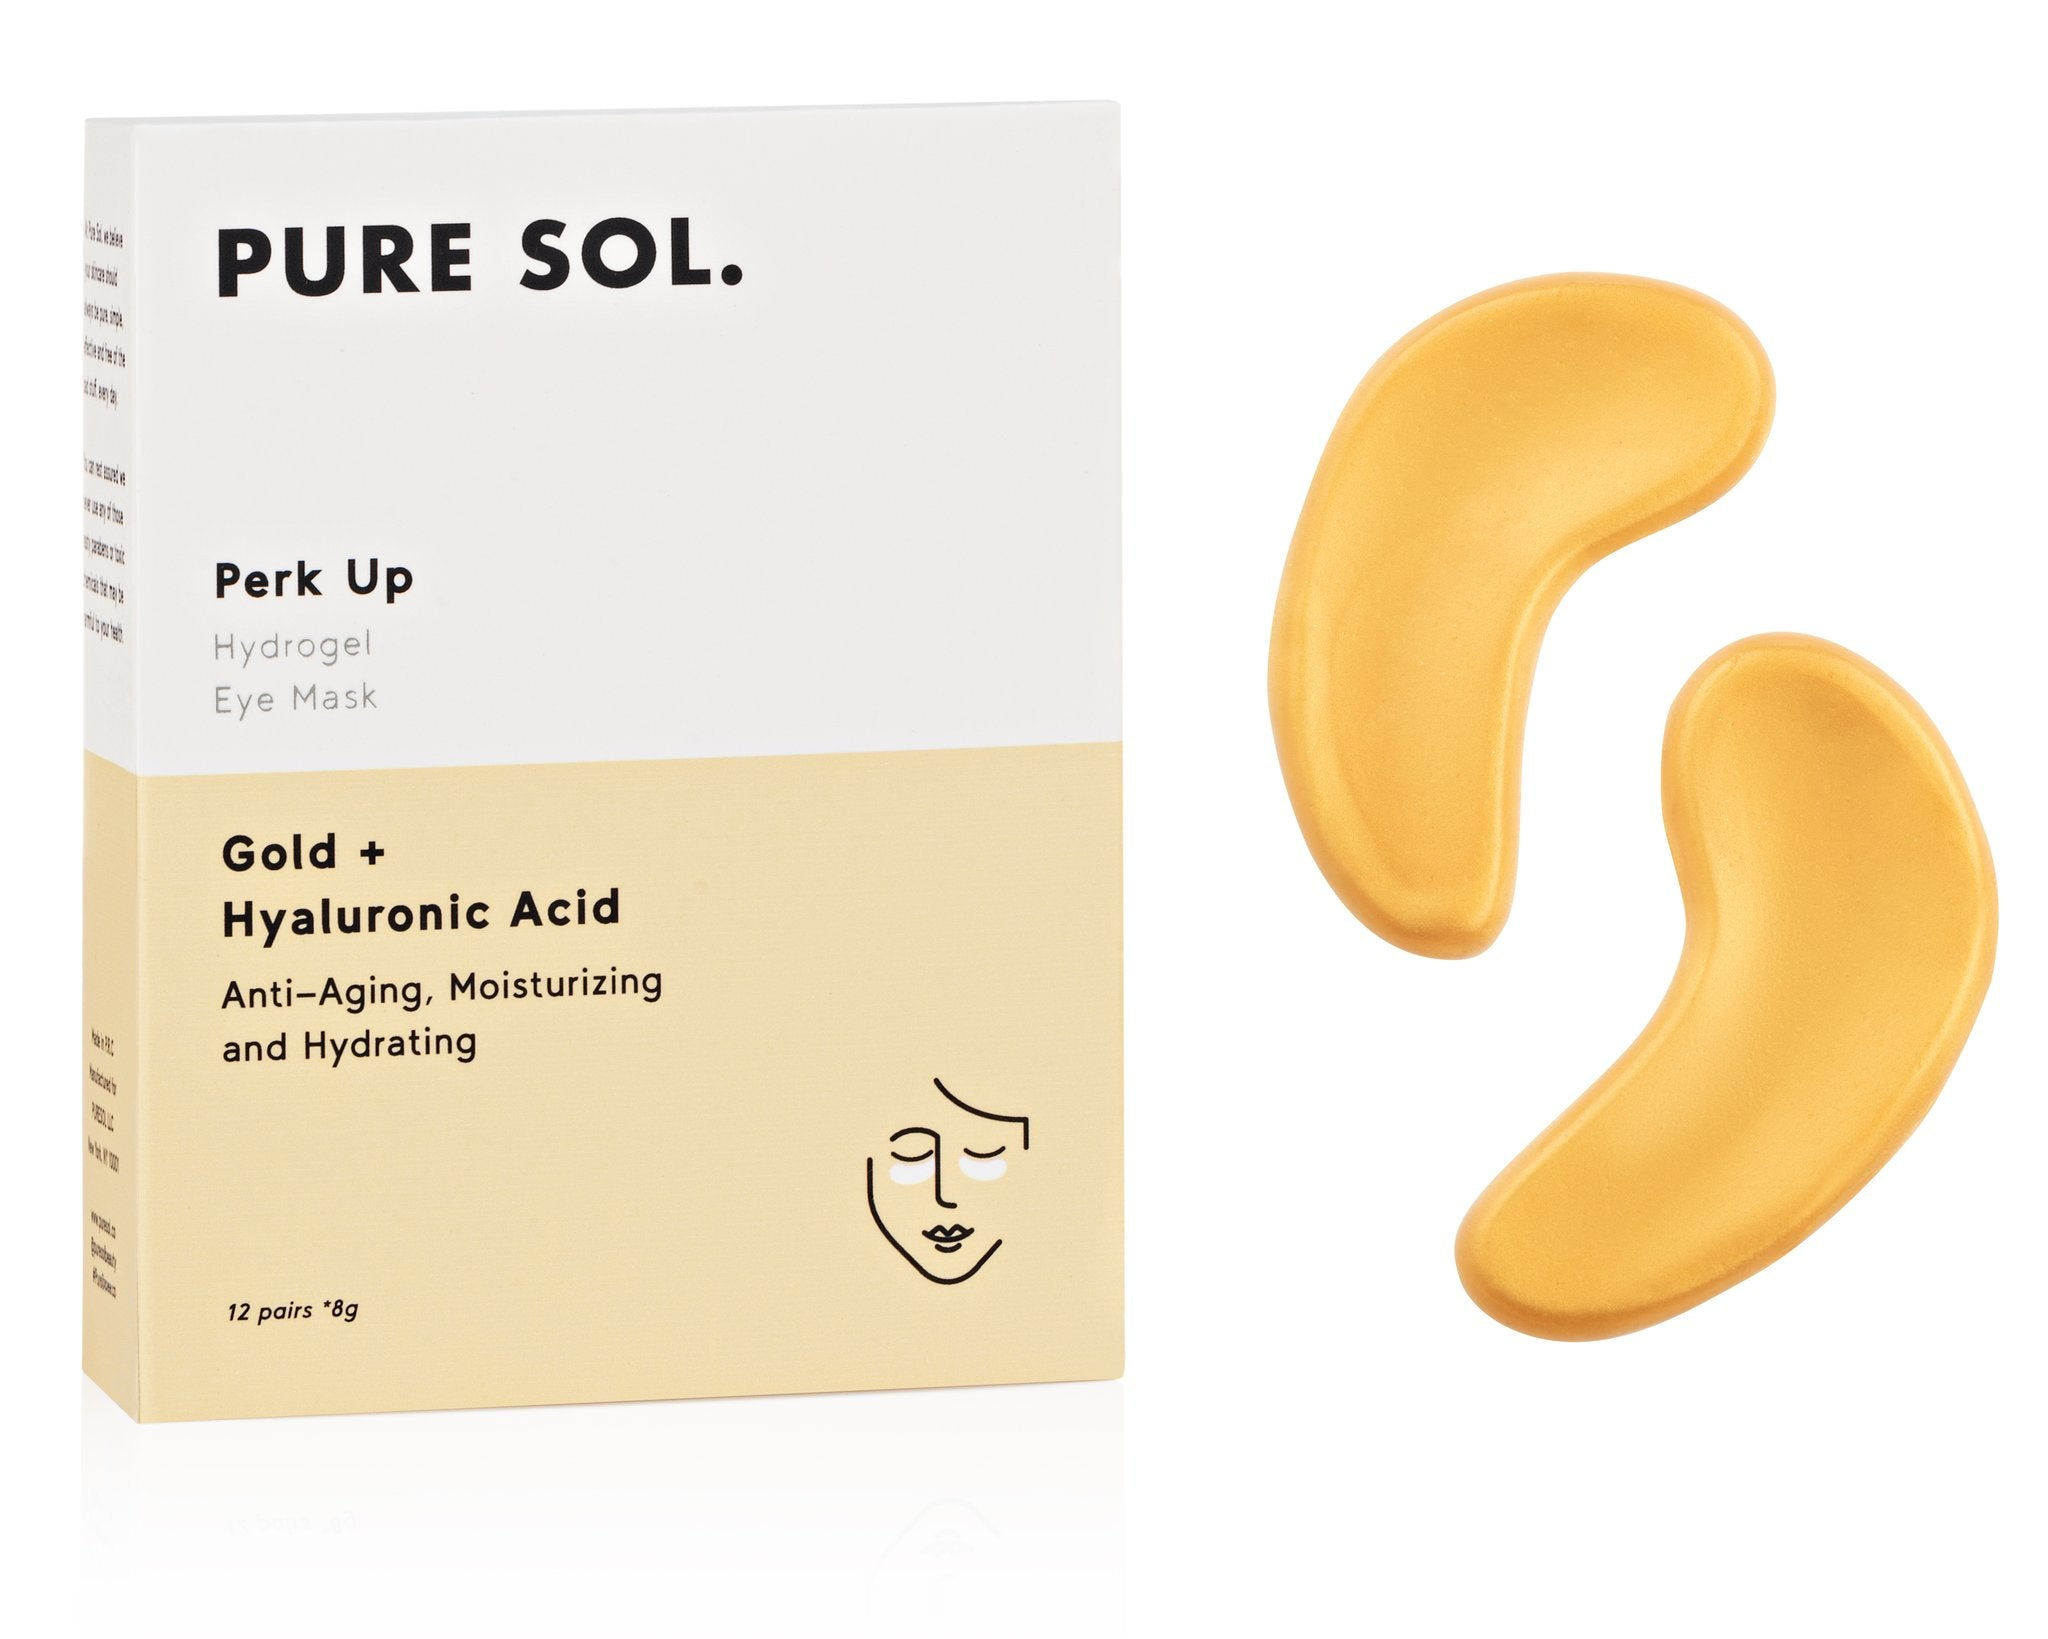 Perk Up Hydrogel Eye Mask